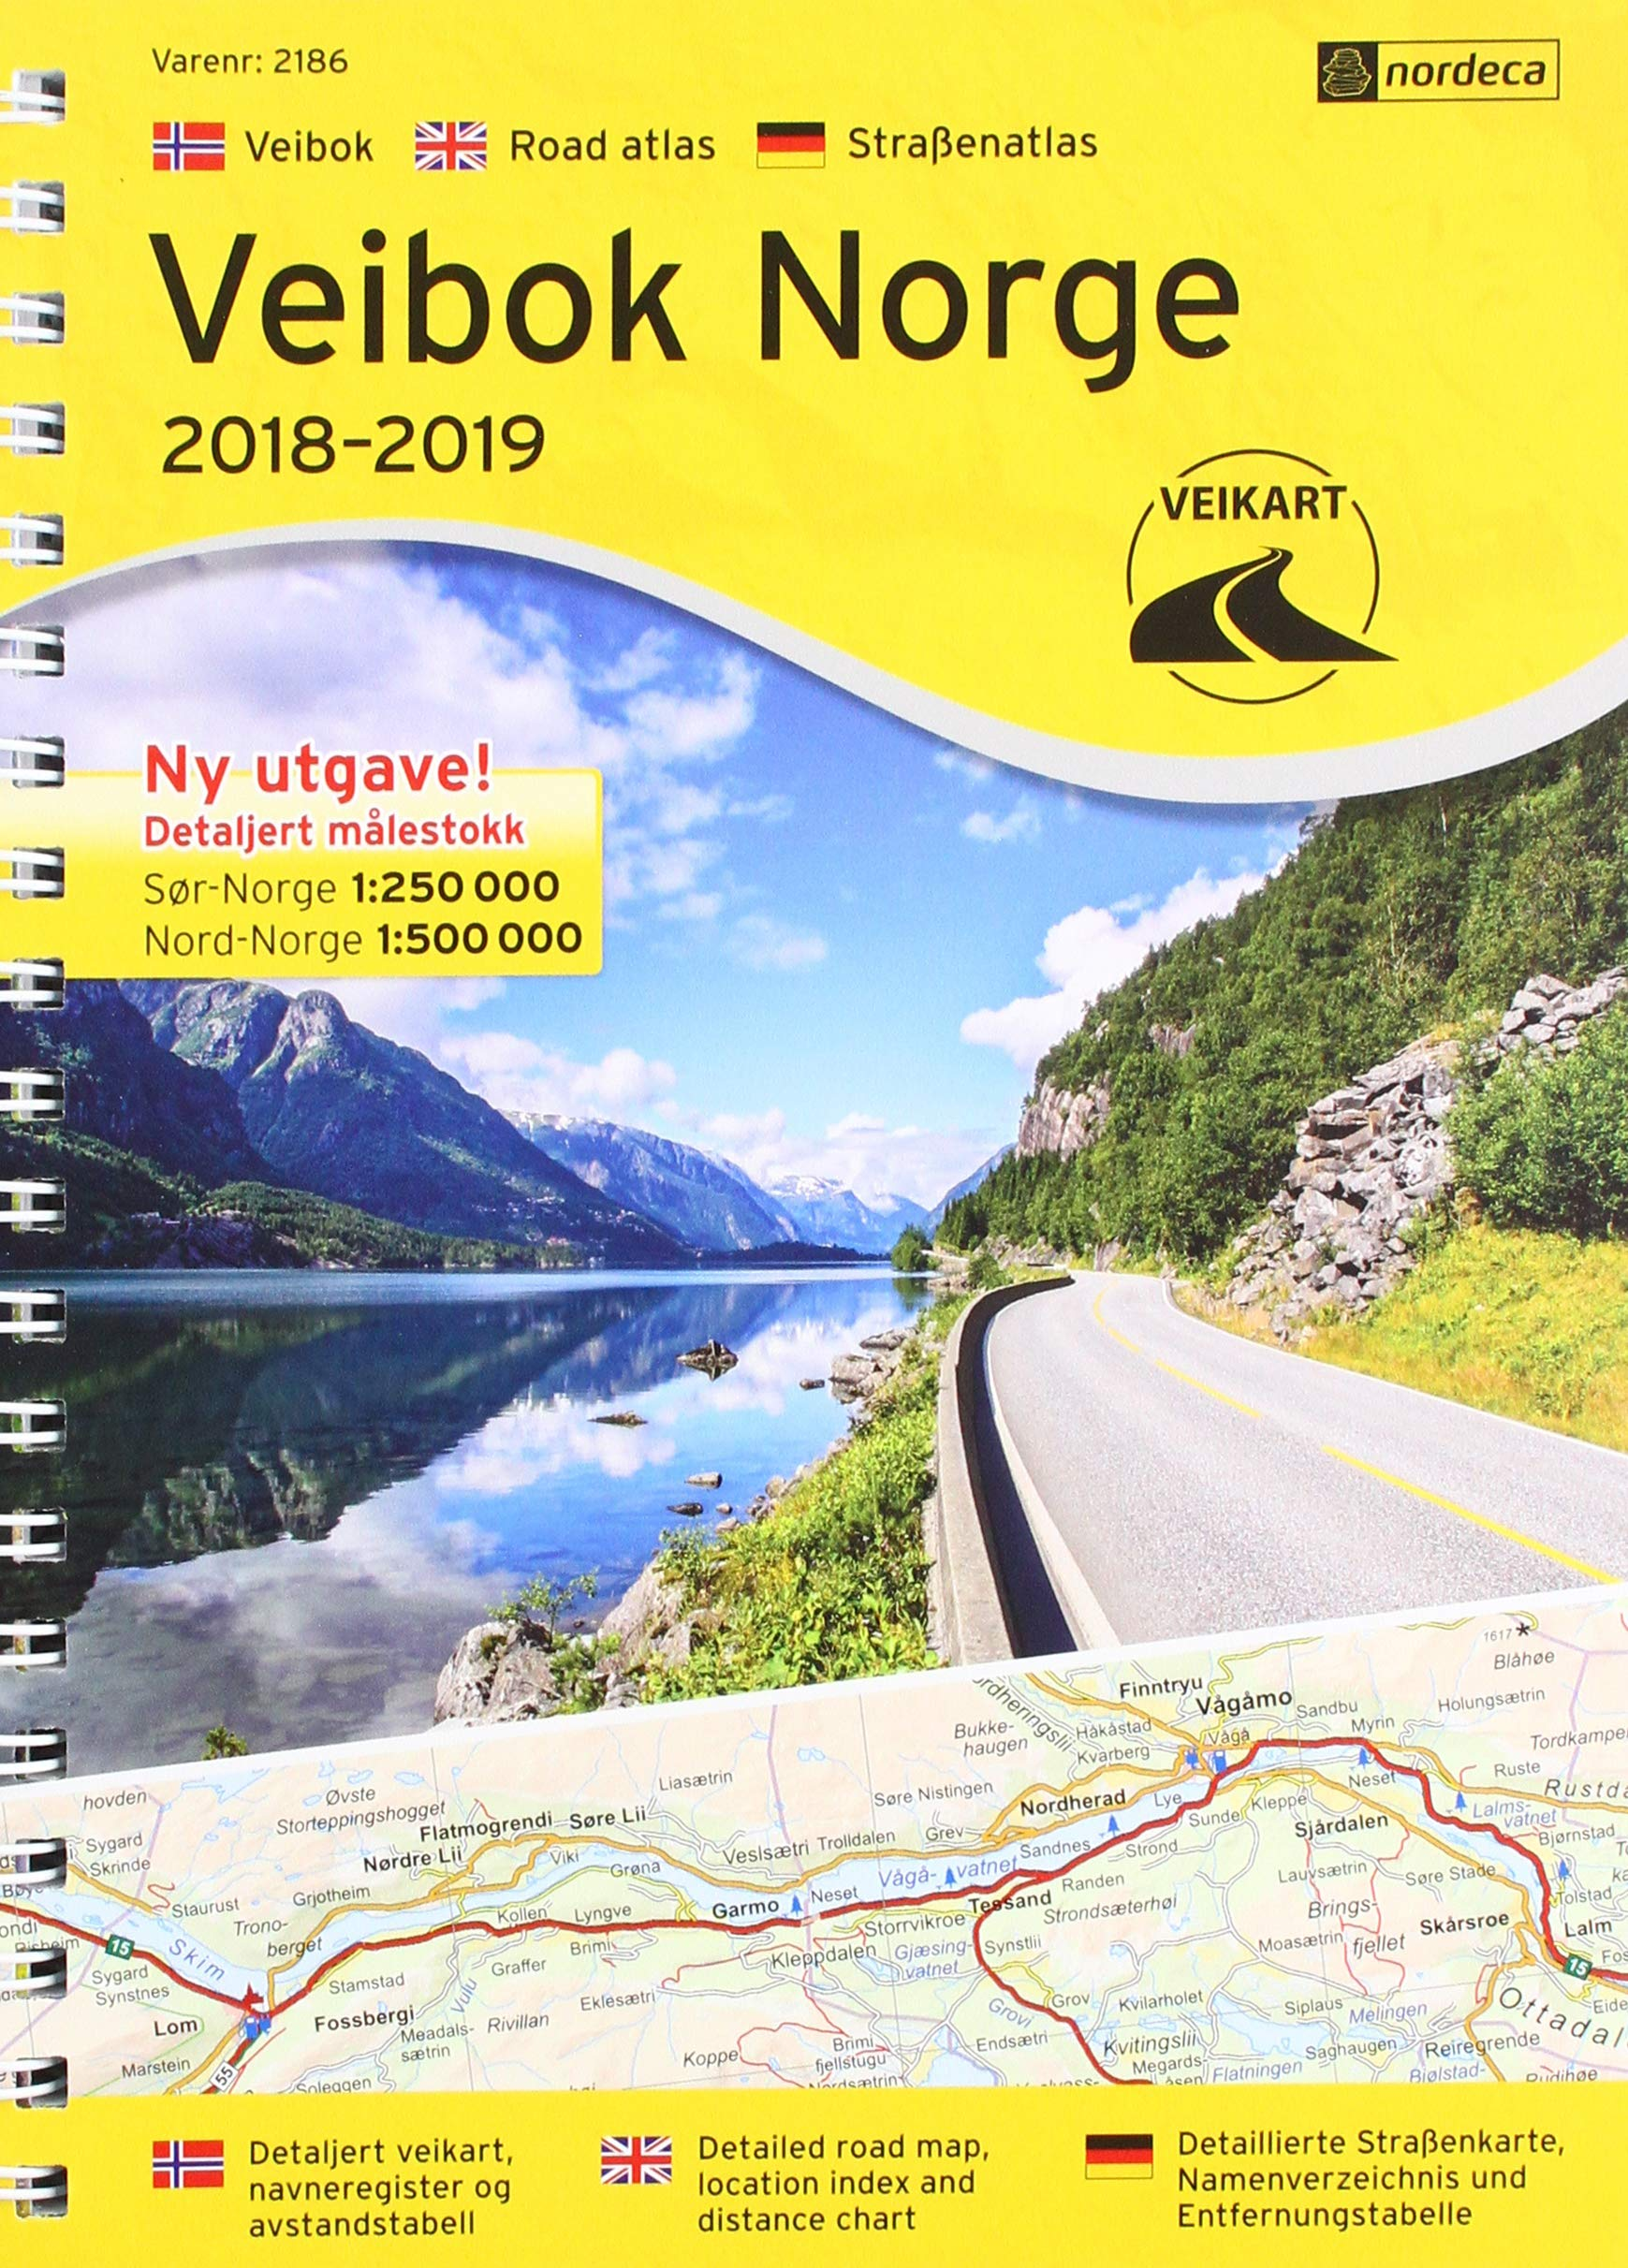 Michelin maps and atlas Norway